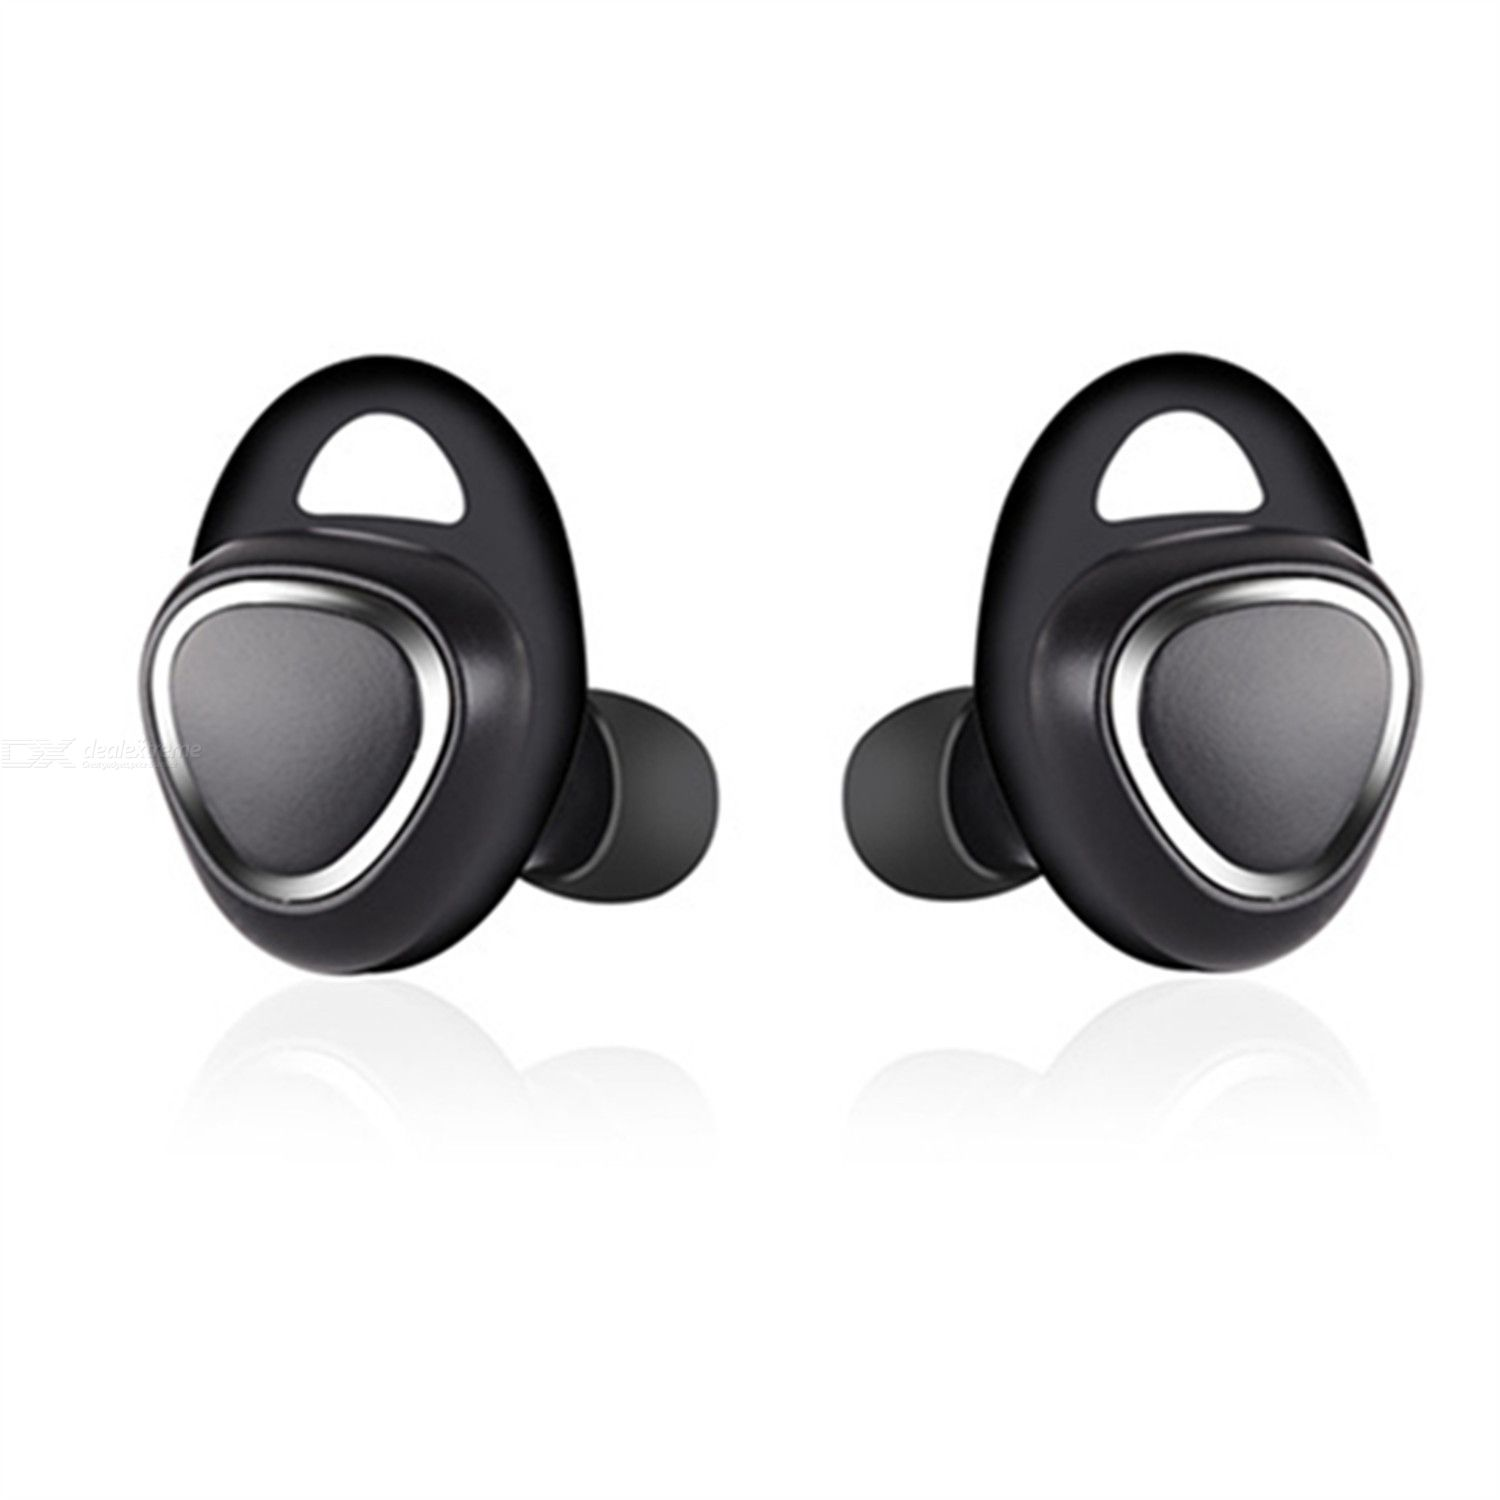 Samsung R150 Bluetooth Earphone Noise Canceling Tws Sports Mini Wireless Headsets With Charging Box Free Shipping Dealextreme